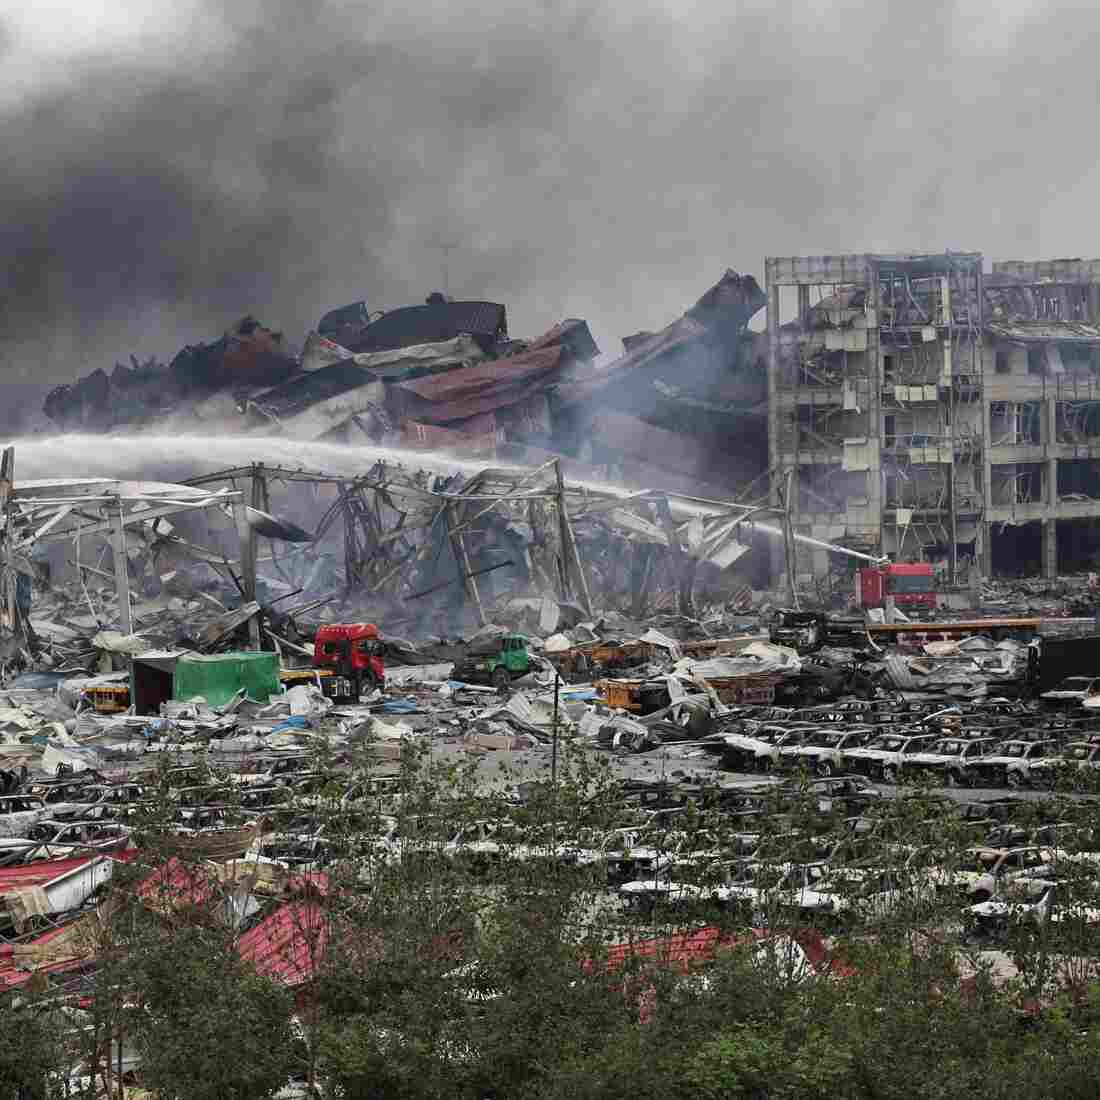 Firefighters work at the warehouse explosion site in Tianjin, north China, Friday. Scorched cars are in the foreground; toppled shipping containers are in the background.